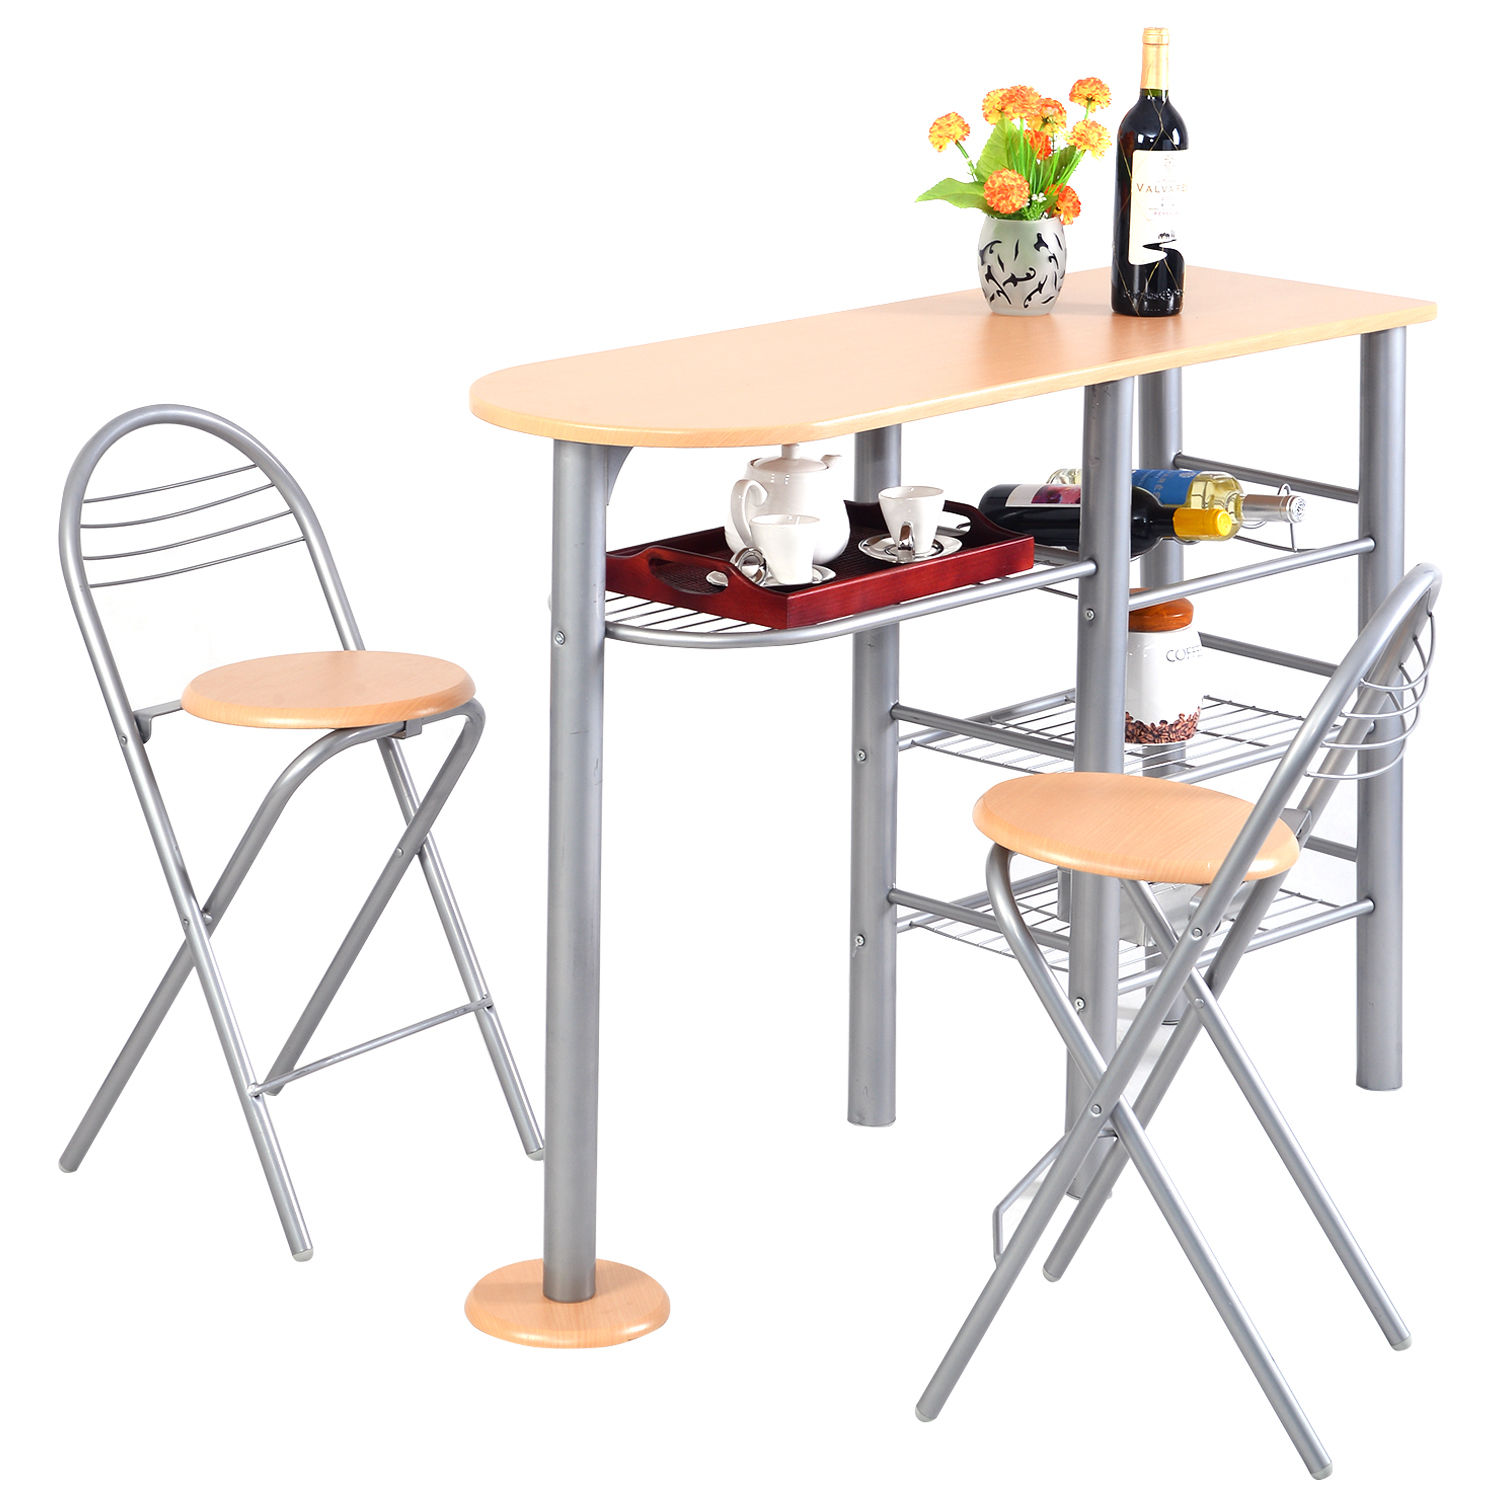 3 piece table and chair set ergonomic mumbai costway pub dining counter height chairs breakfast kitchen walmart com